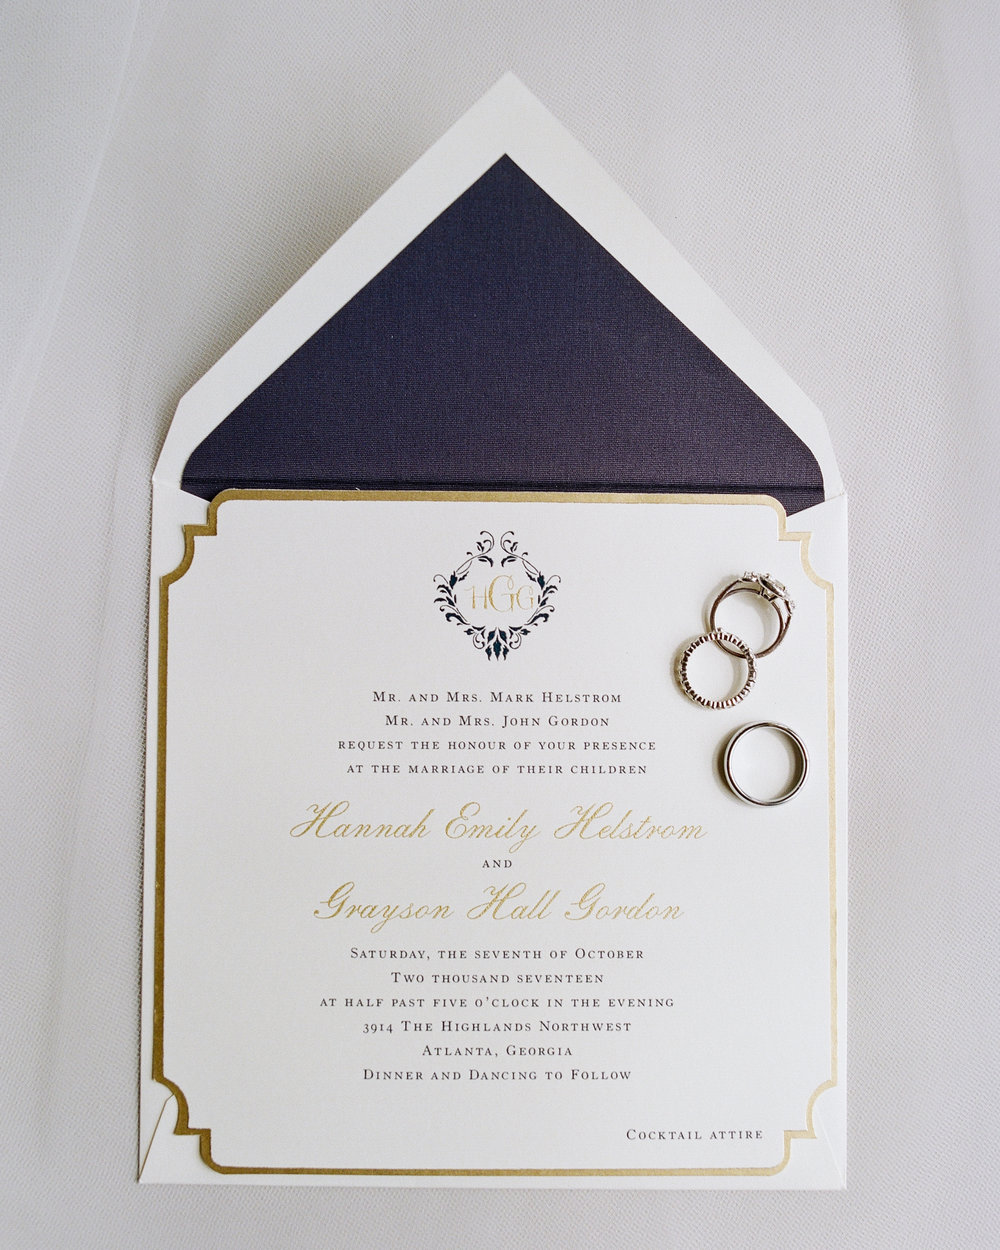 Navy and Gold Wedding Invitation-1003.jpg